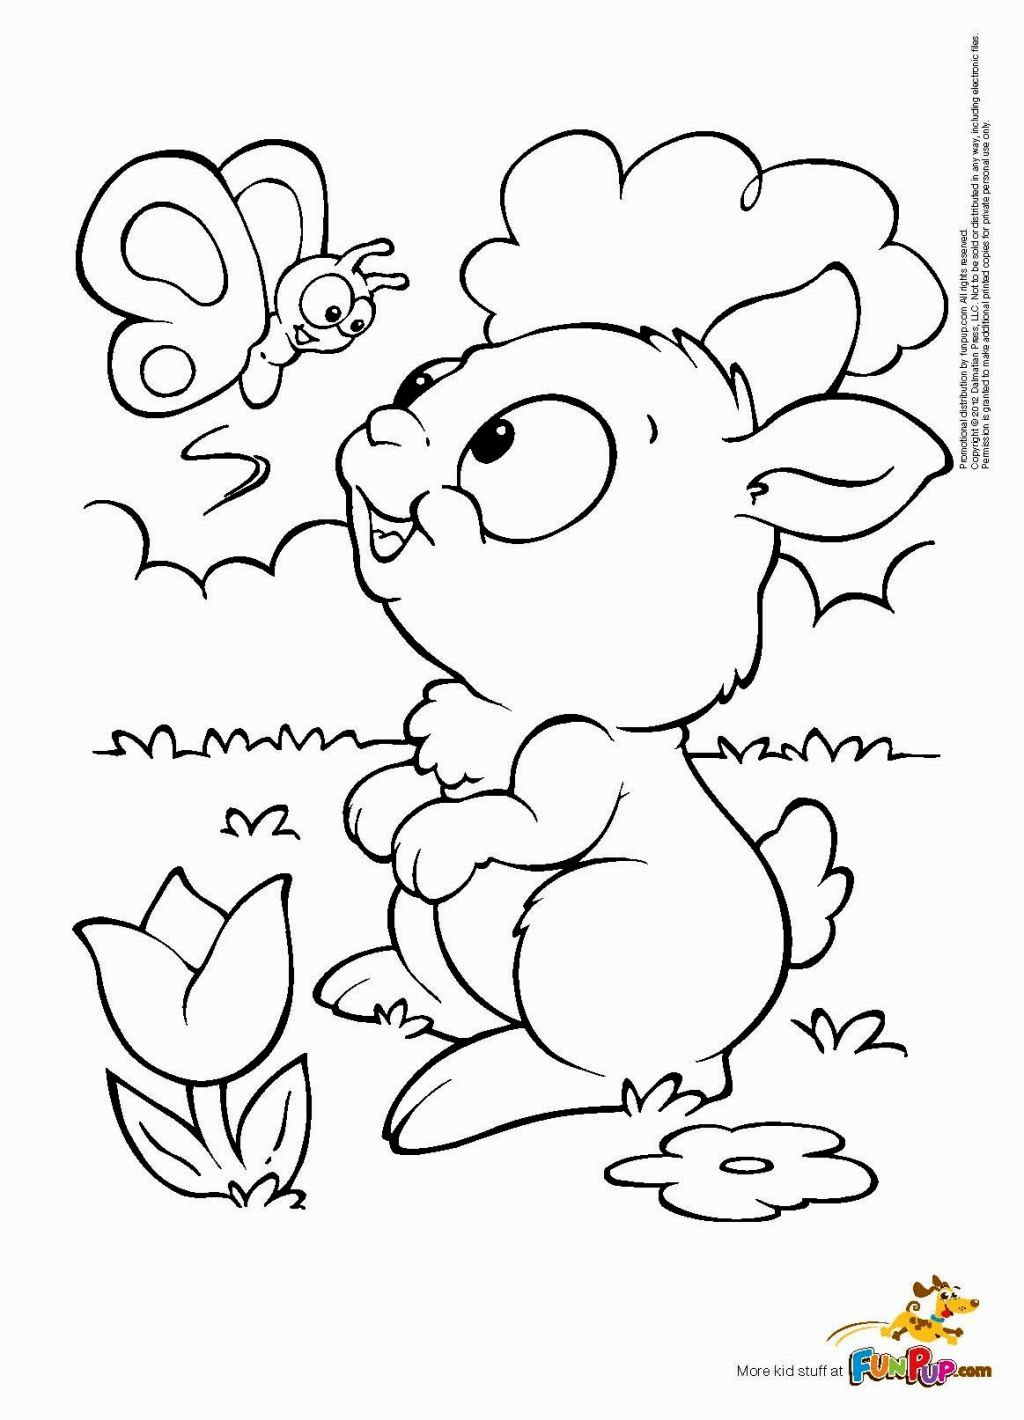 Coloring Sheets March Bunny coloring pages, Coloring